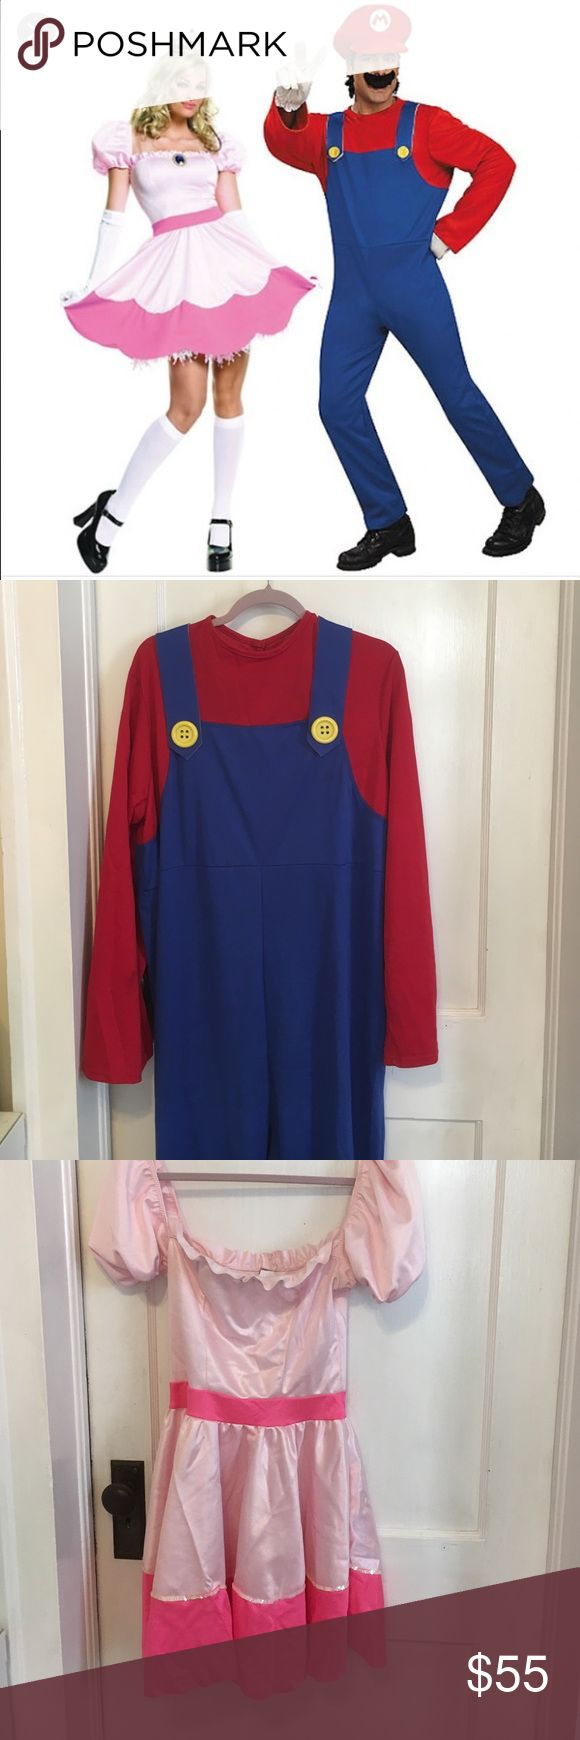 Mario and princess peach costume Couples costume worn one Halloween. Includes princess peach dress, Mario outfit and hat. Leg Avenue Other